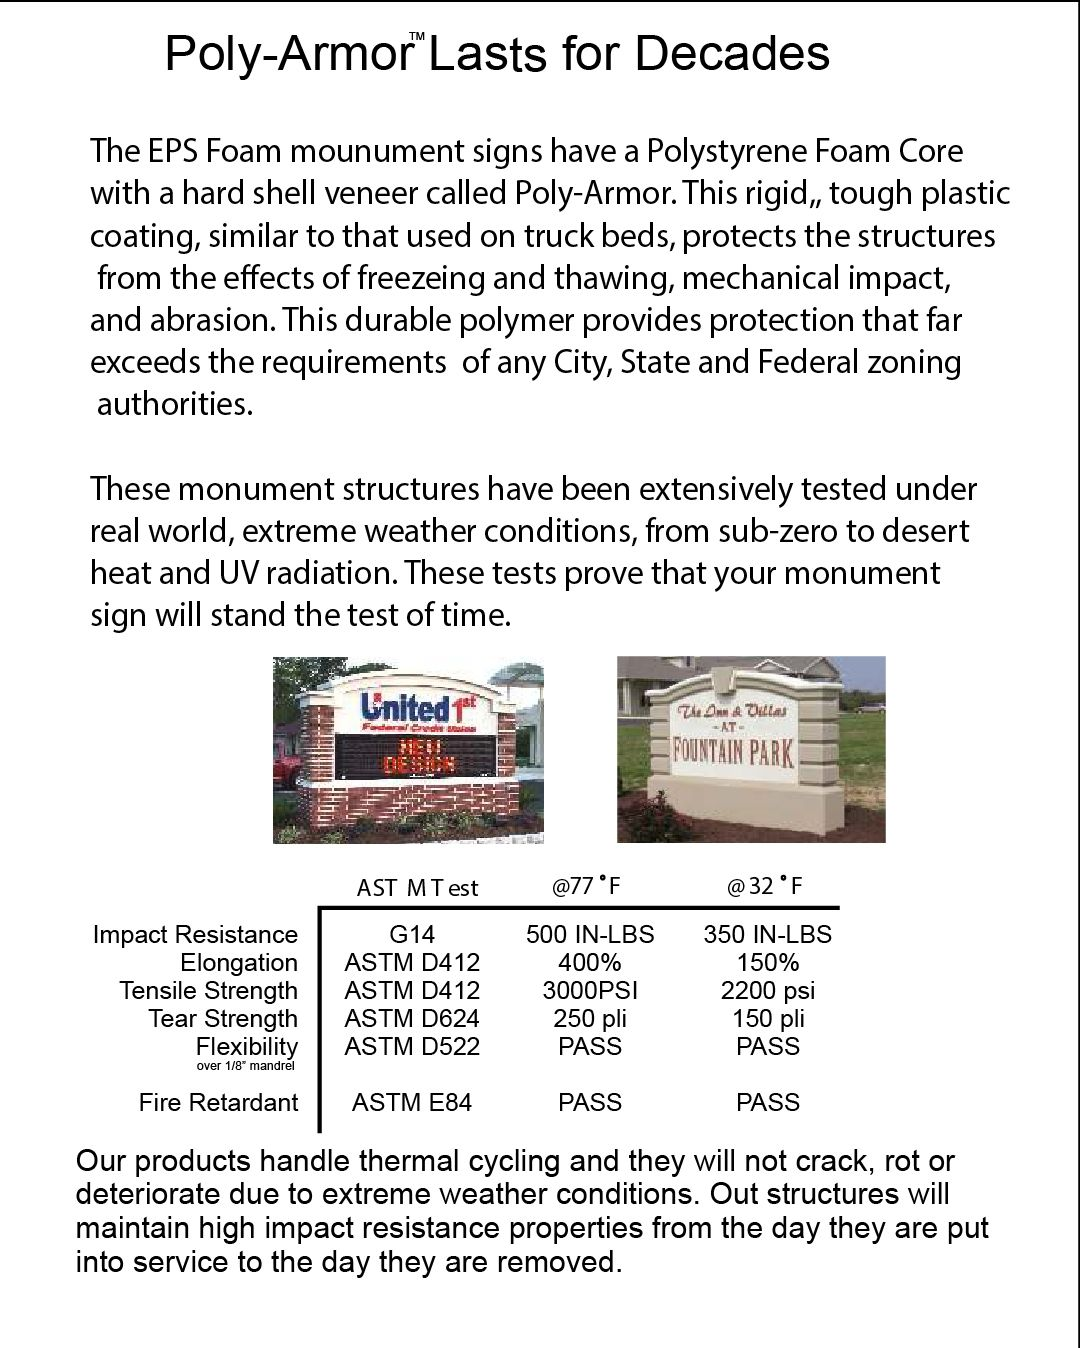 M6703 - EPS Monument Signs Have a Hard, Tough, Weatherproof PolyArmor Hard Shell (physical properties)